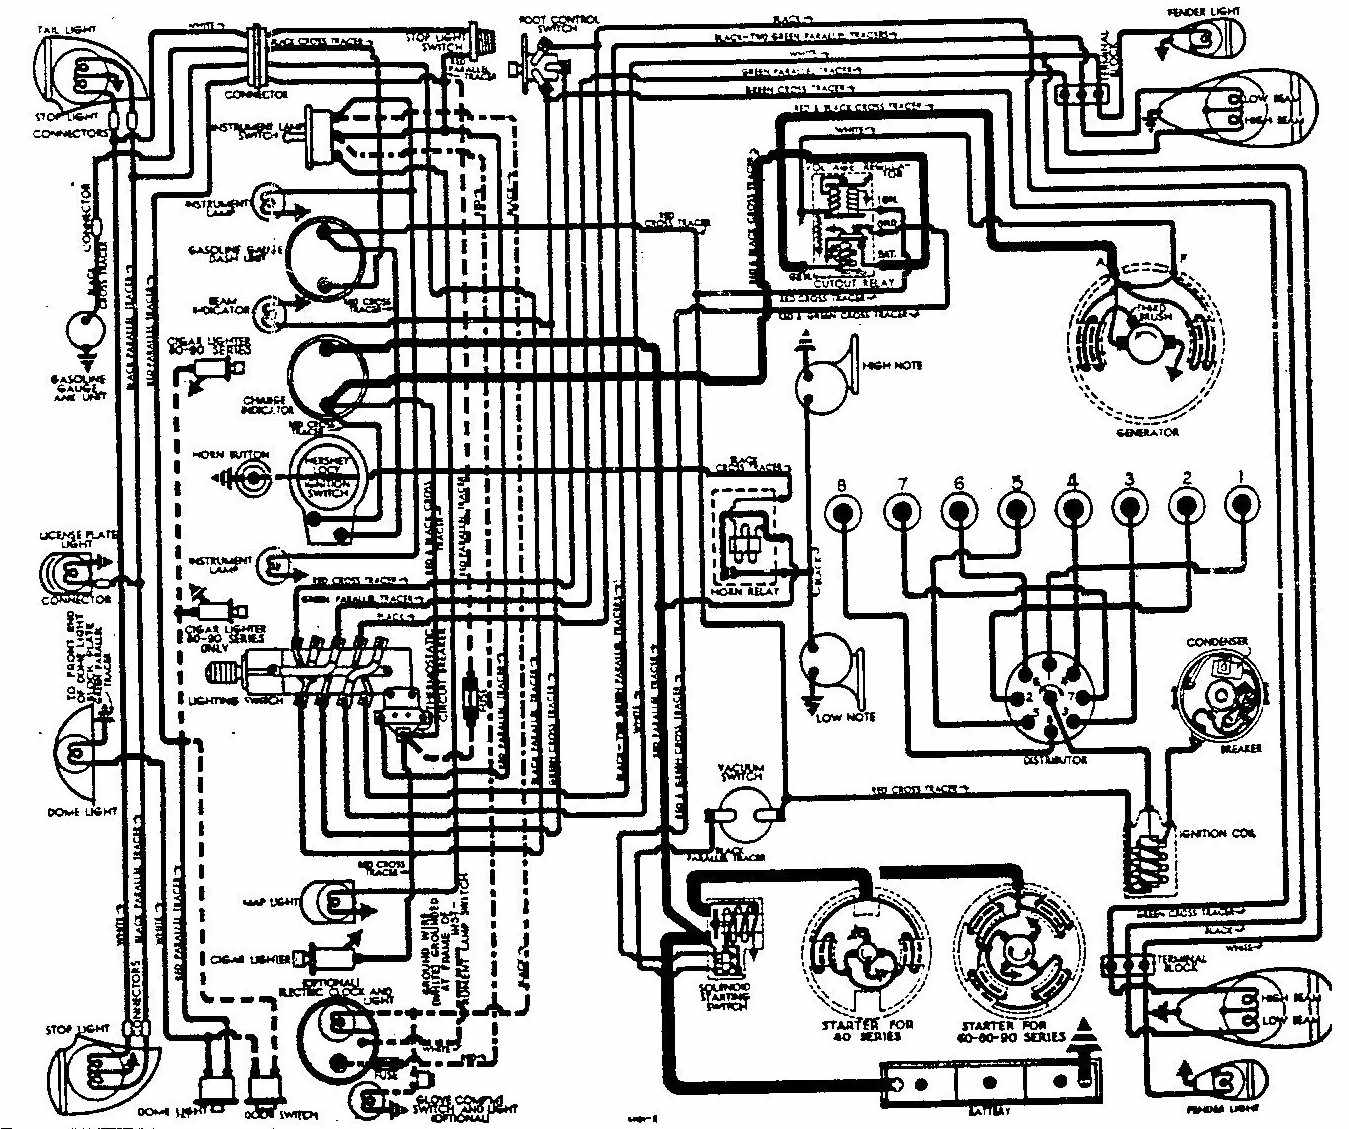 Buick+Roadmaster+1938+Electrical+Wiring+Diagram ford 7710 tractor wiring diagram ford discover your wiring Ford Tractor Wiring Harness Diagram at mifinder.co